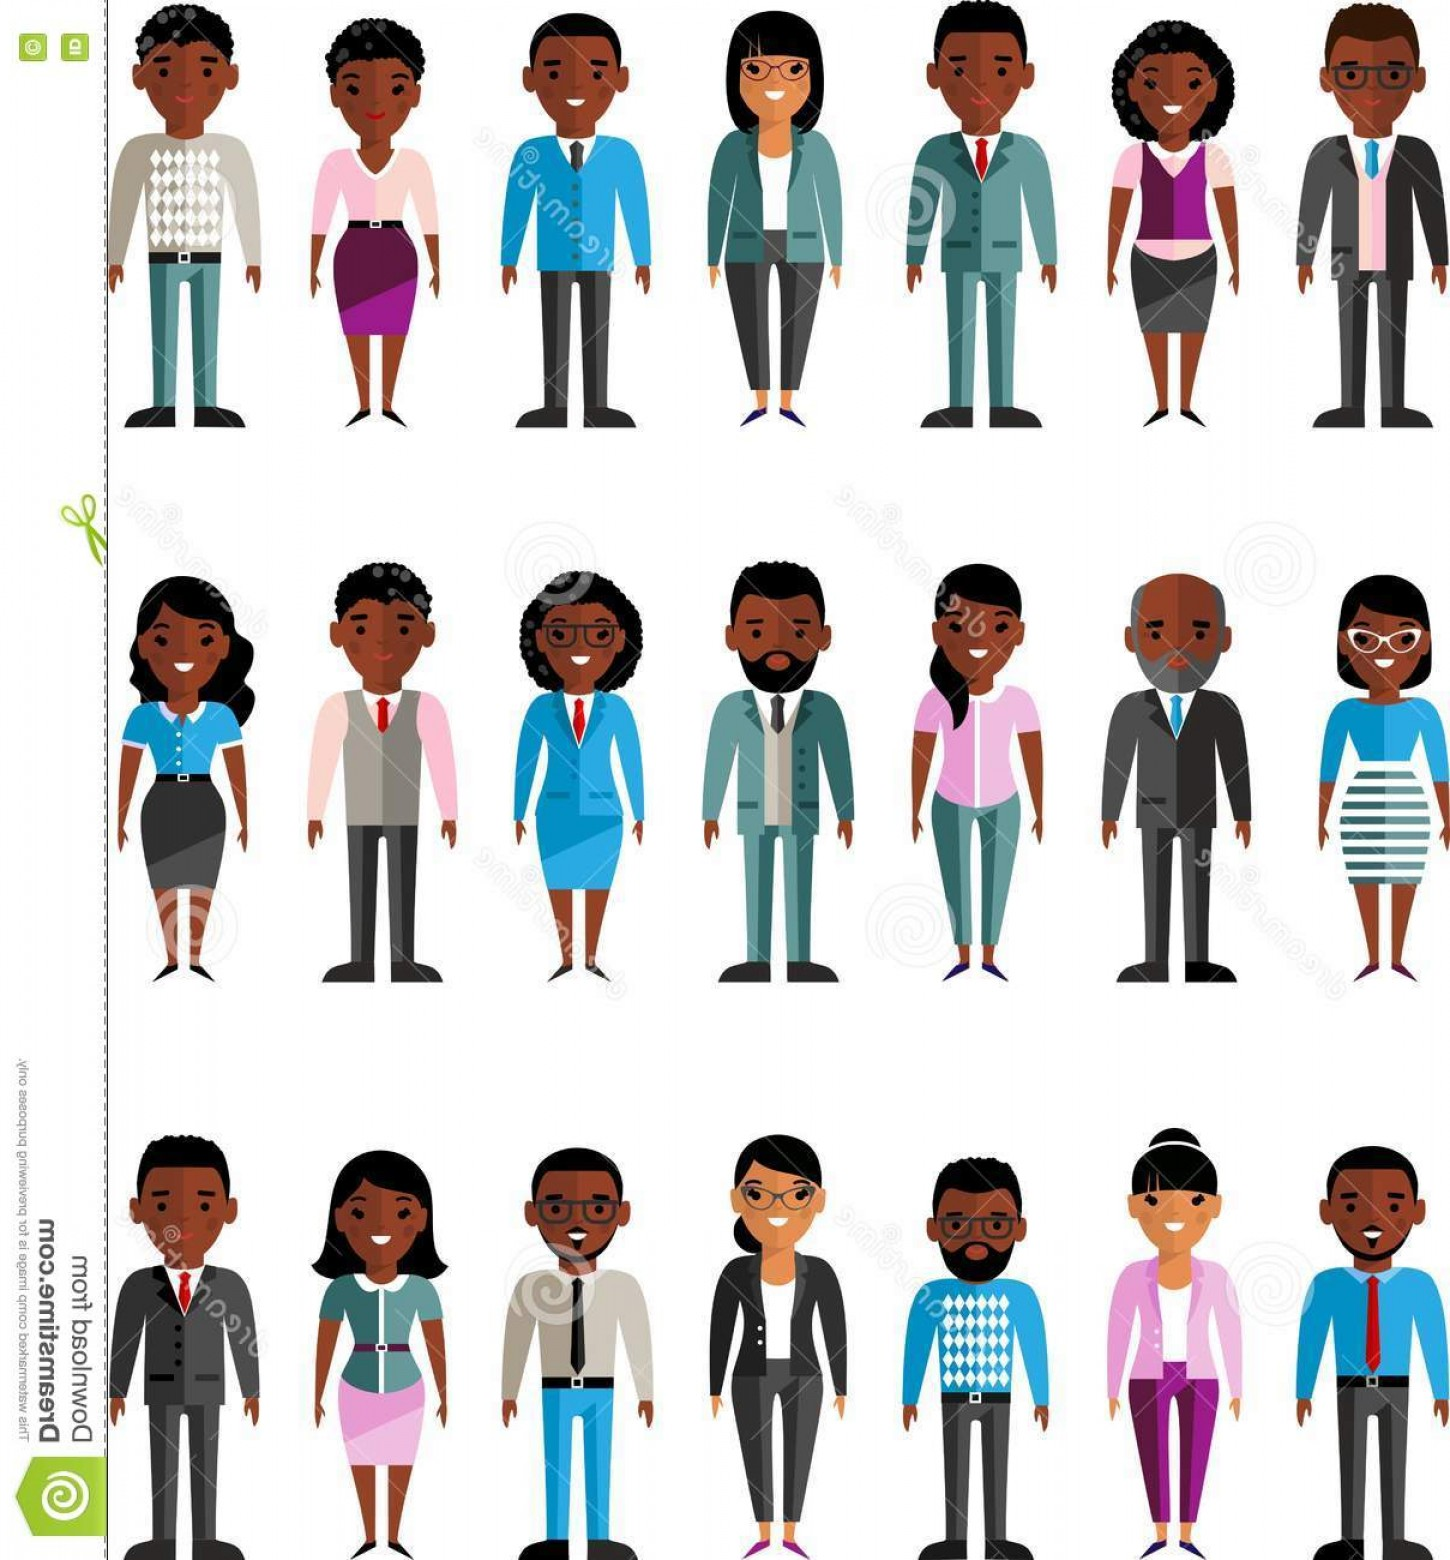 Vector African People: Stock Illustration Set Vector African American Business Peoples Illustration International Different Manager Man Woman Image